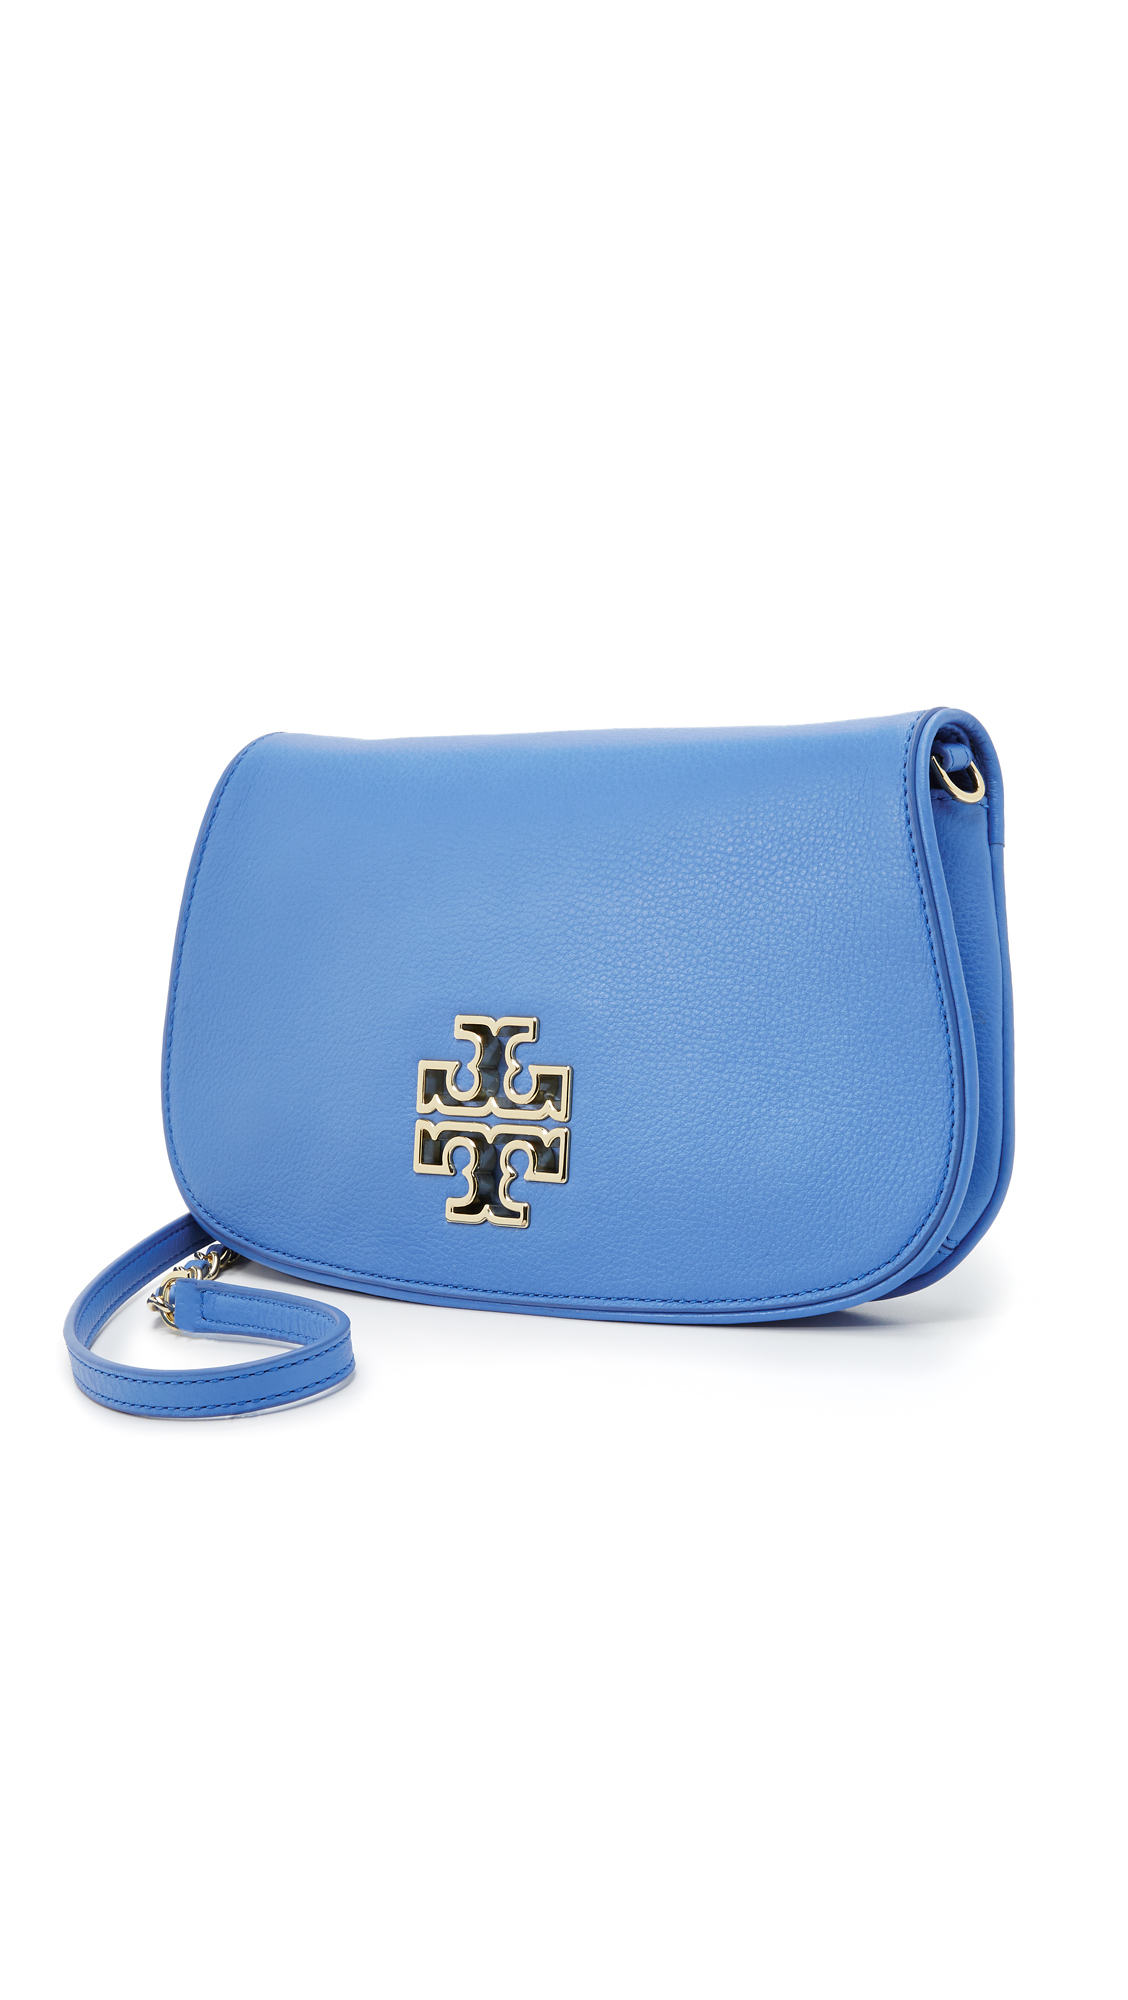 5f75ec02fe02 Gallery. Previously sold at  Shopbop · Women s Tory Burch ...